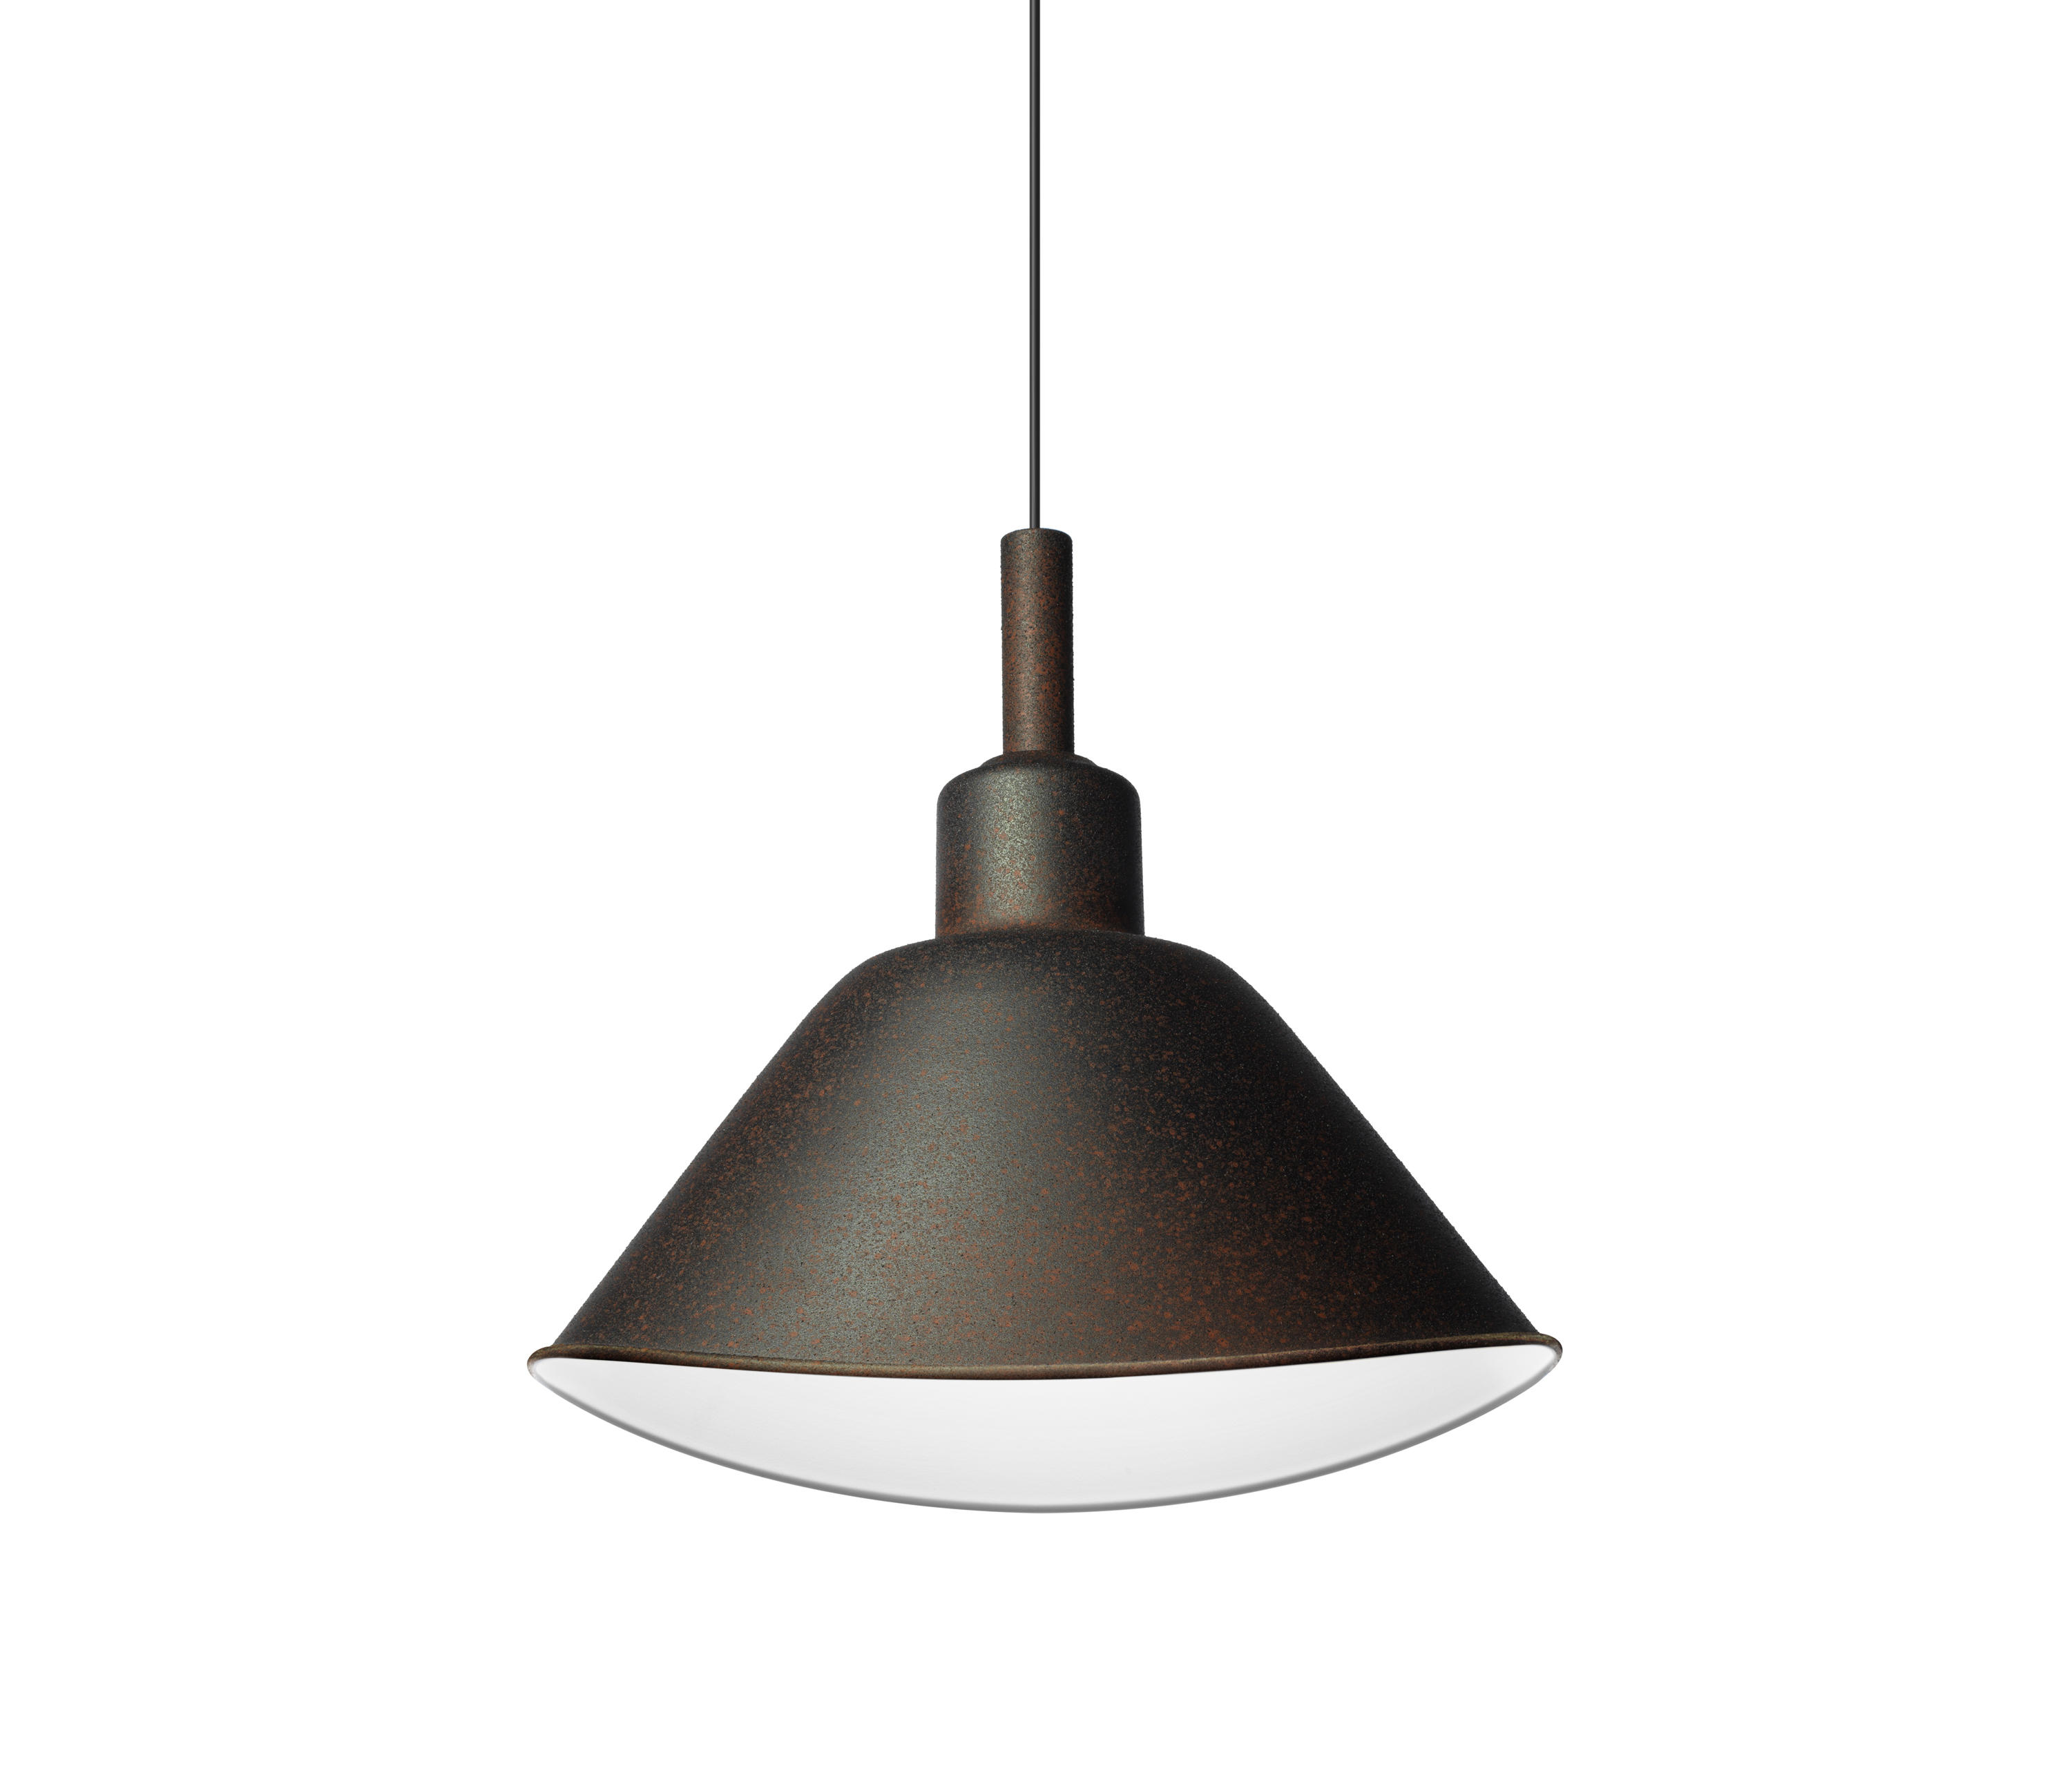 Foscarini Lights Smash Suspension Suspended Lights From Diesel With Foscarini